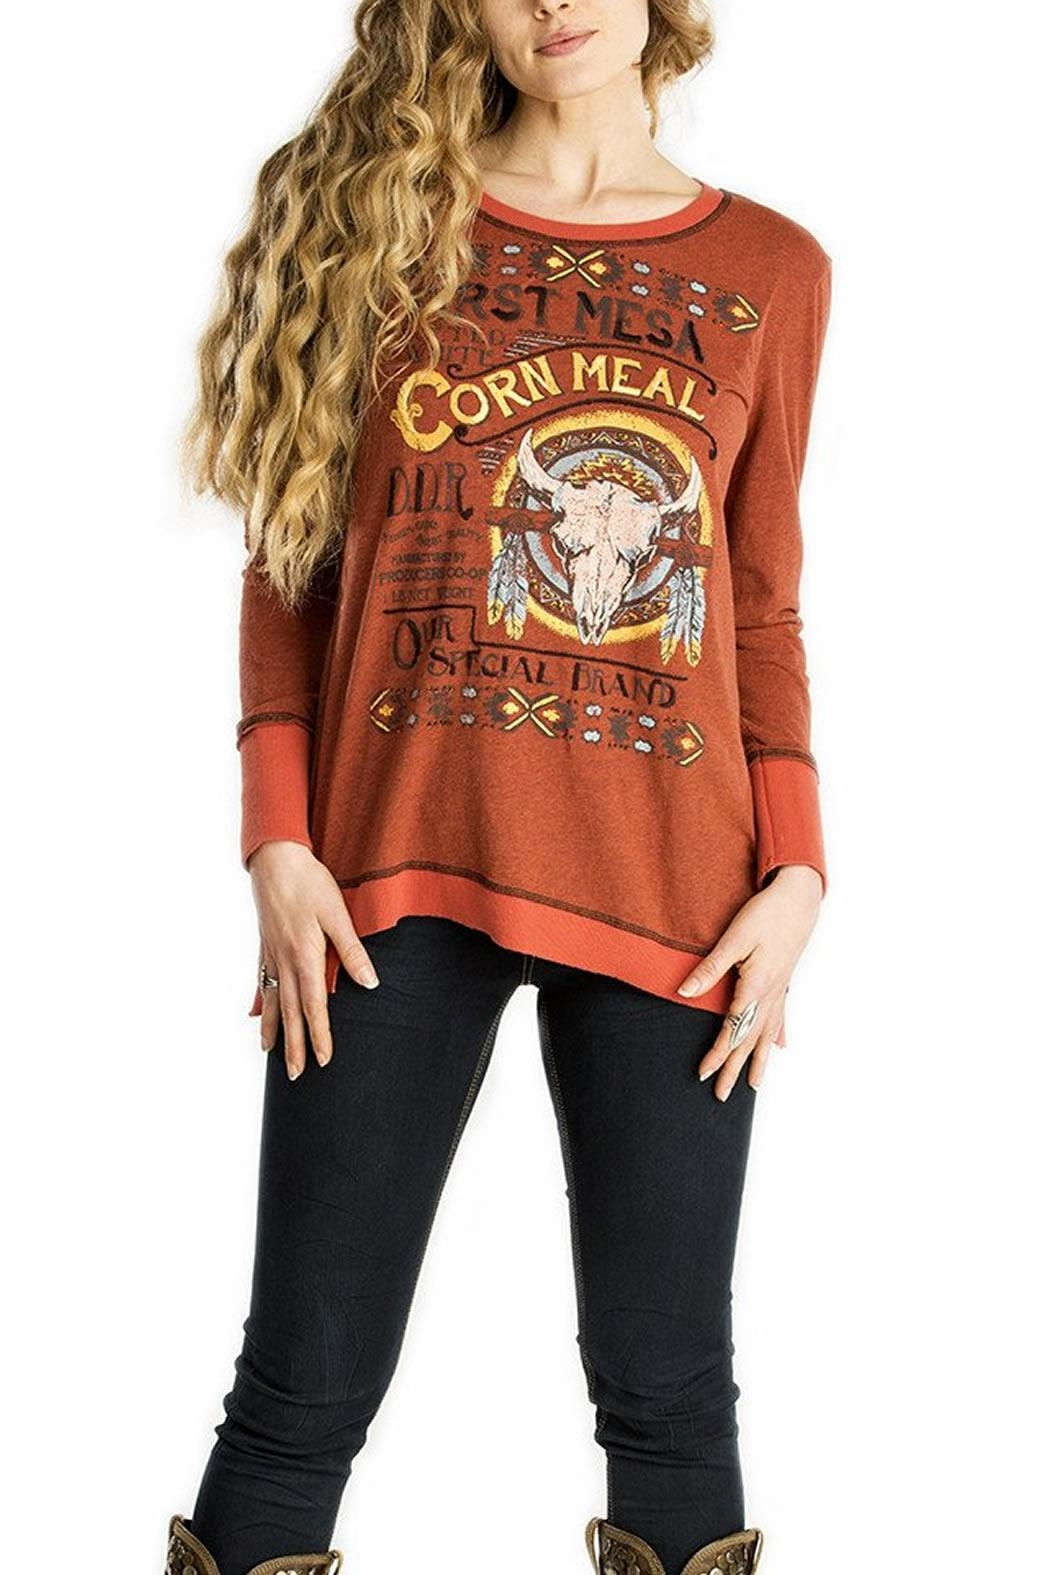 Double D Ranchwear First-Mesa Corn-Meal Top - Main Image